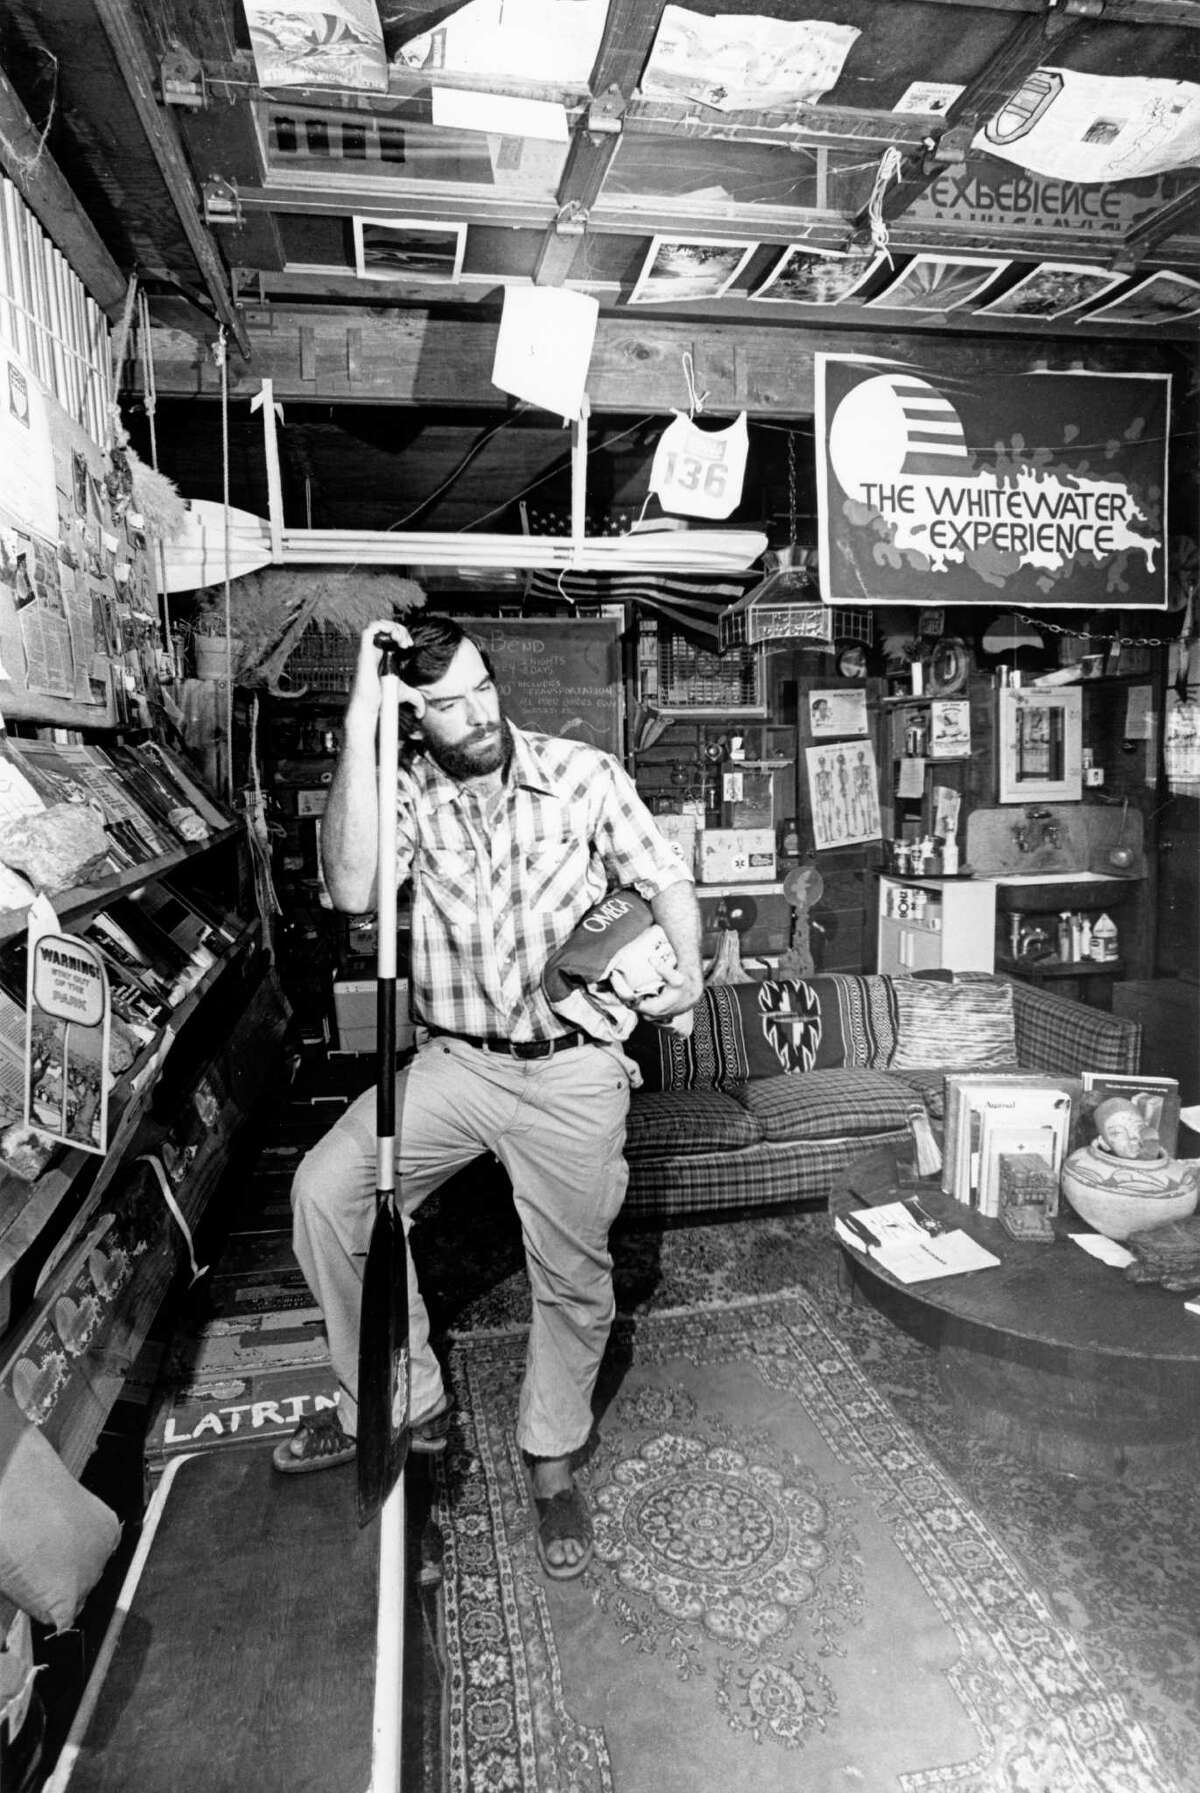 07/17/1980 - Whitewater guide and outfitter Don Greene in his shop.